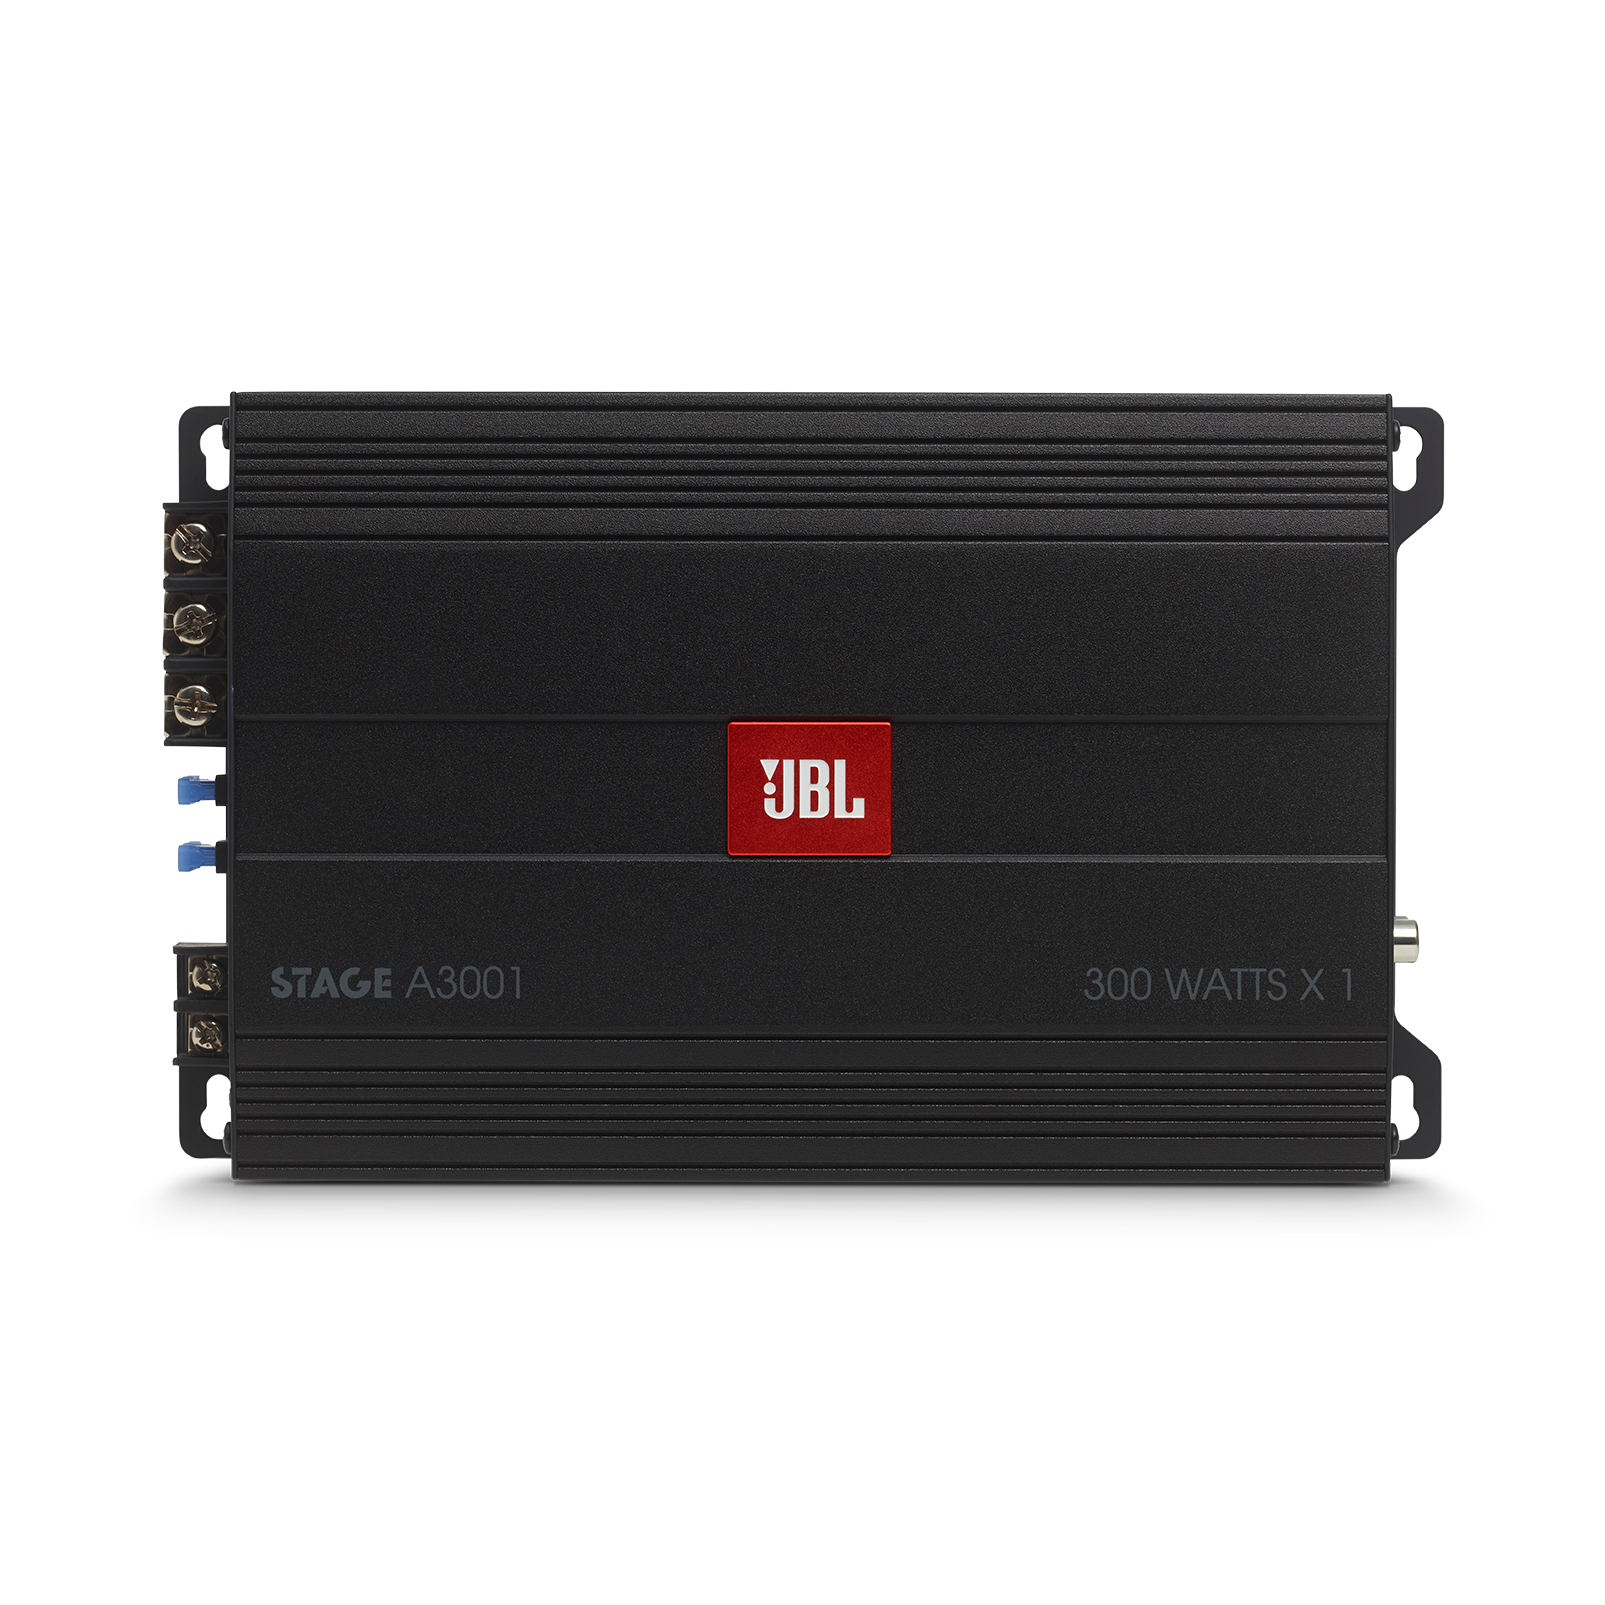 JBL Stage Amplifier A3001 - Black - Class D Car Audio Amplifier - Front